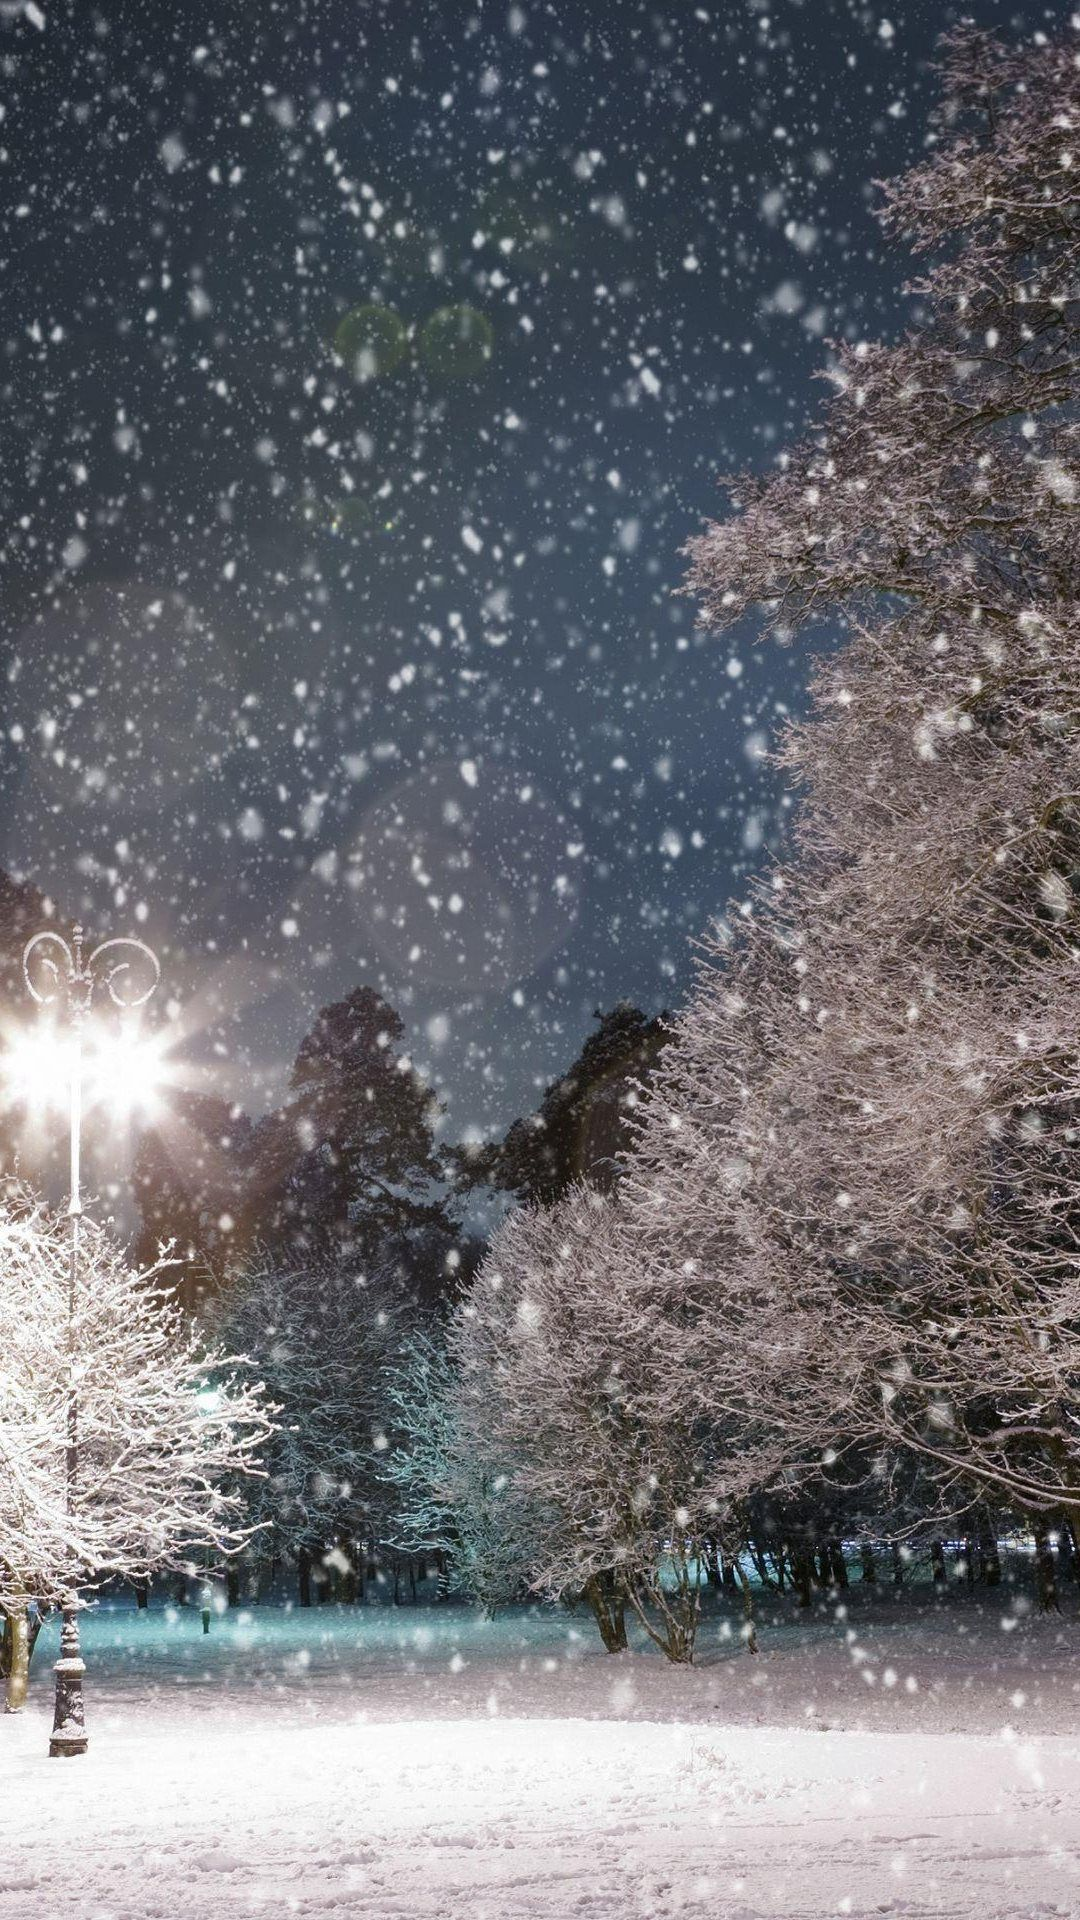 Falling Snow Trees Night android wallpaper HD Зима